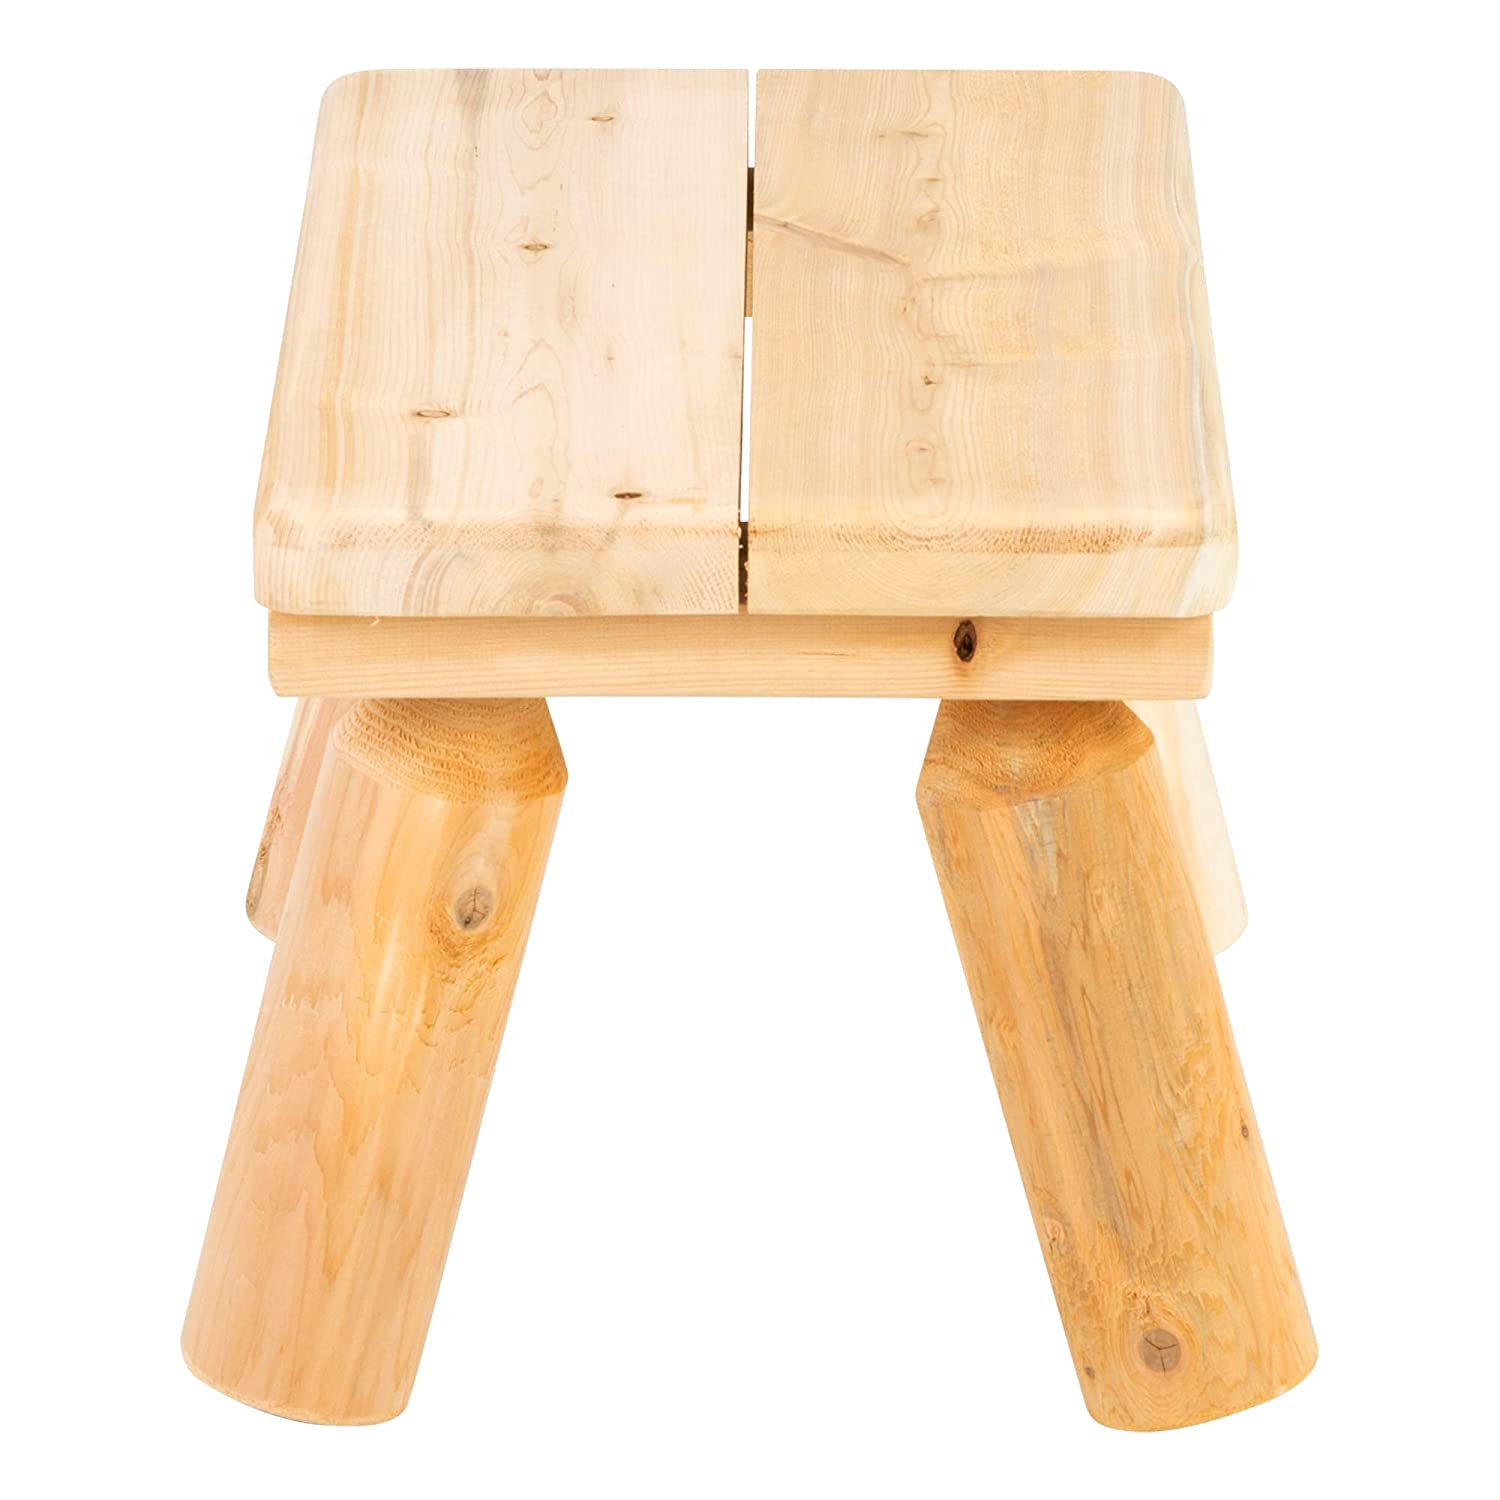 SPG-KEE2012-SO Sprogs Outdoor Preschool Cedar Bench 12 Seat Height